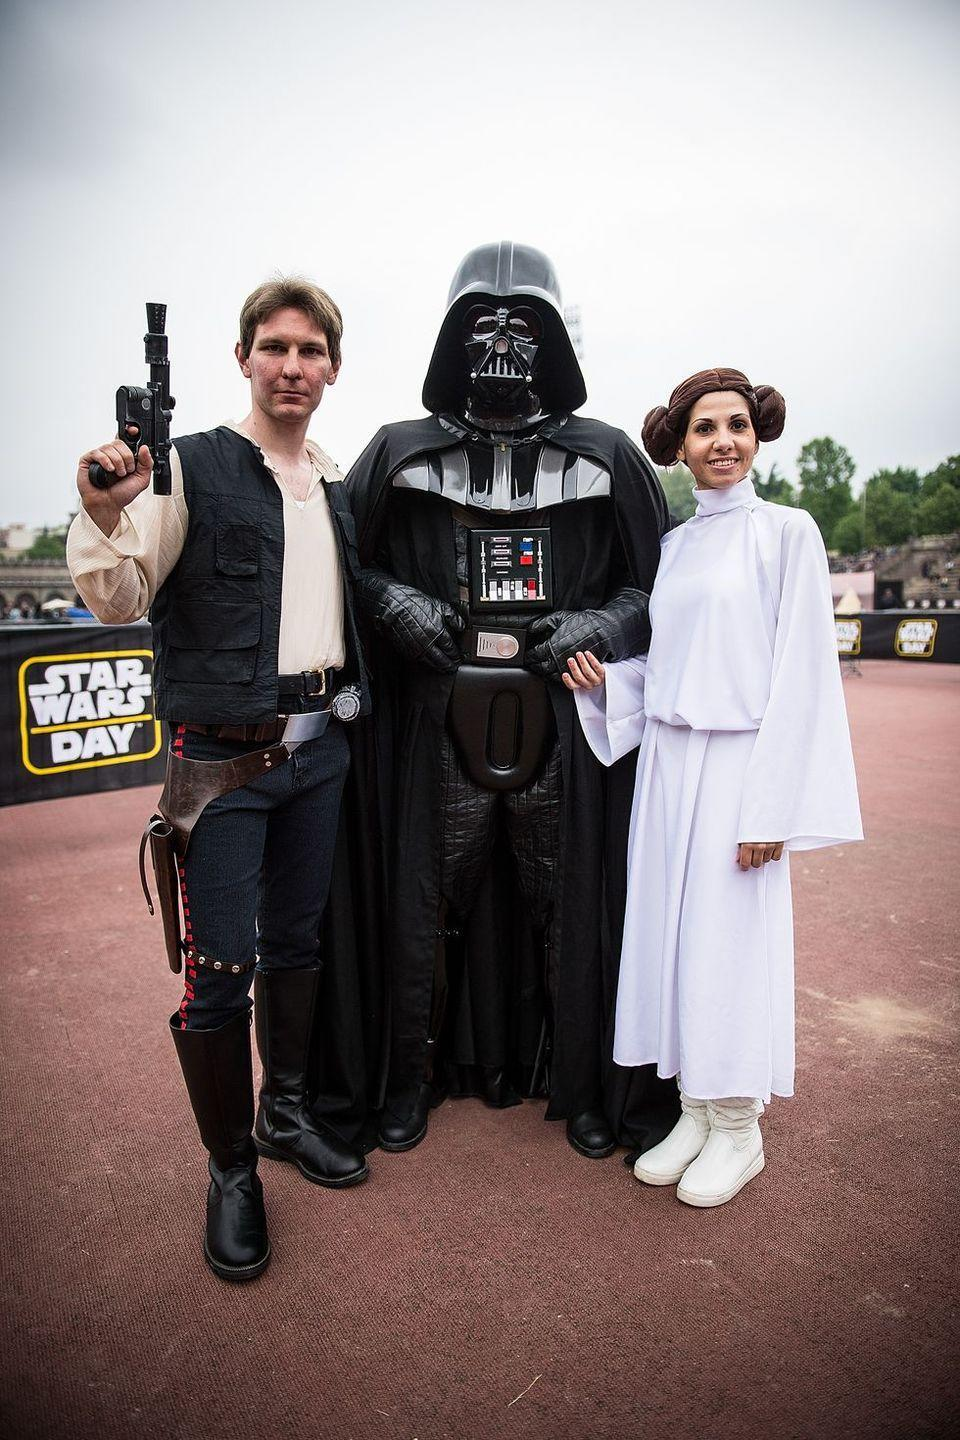 """<p><a href=""""https://www.womansday.com/style/g28692510/star-wars-costume-ideas/"""" rel=""""nofollow noopener"""" target=""""_blank"""" data-ylk=""""slk:Stars Wars costumes"""" class=""""link rapid-noclick-resp""""><em>Stars Wars</em> costumes</a> never go out of style, and the force will definitely be with your group if you take on Hans Solo, Darth Vader, and Princess Leia this year.</p><p><a class=""""link rapid-noclick-resp"""" href=""""https://www.amazon.com/Rubies-Star-Darth-Vader-Molded/dp/B0009S6TJ4?tag=syn-yahoo-20&ascsubtag=%5Bartid%7C10070.g.23122163%5Bsrc%7Cyahoo-us"""" rel=""""nofollow noopener"""" target=""""_blank"""" data-ylk=""""slk:SHOP DARTH VADER MASK"""">SHOP DARTH VADER MASK</a></p>"""